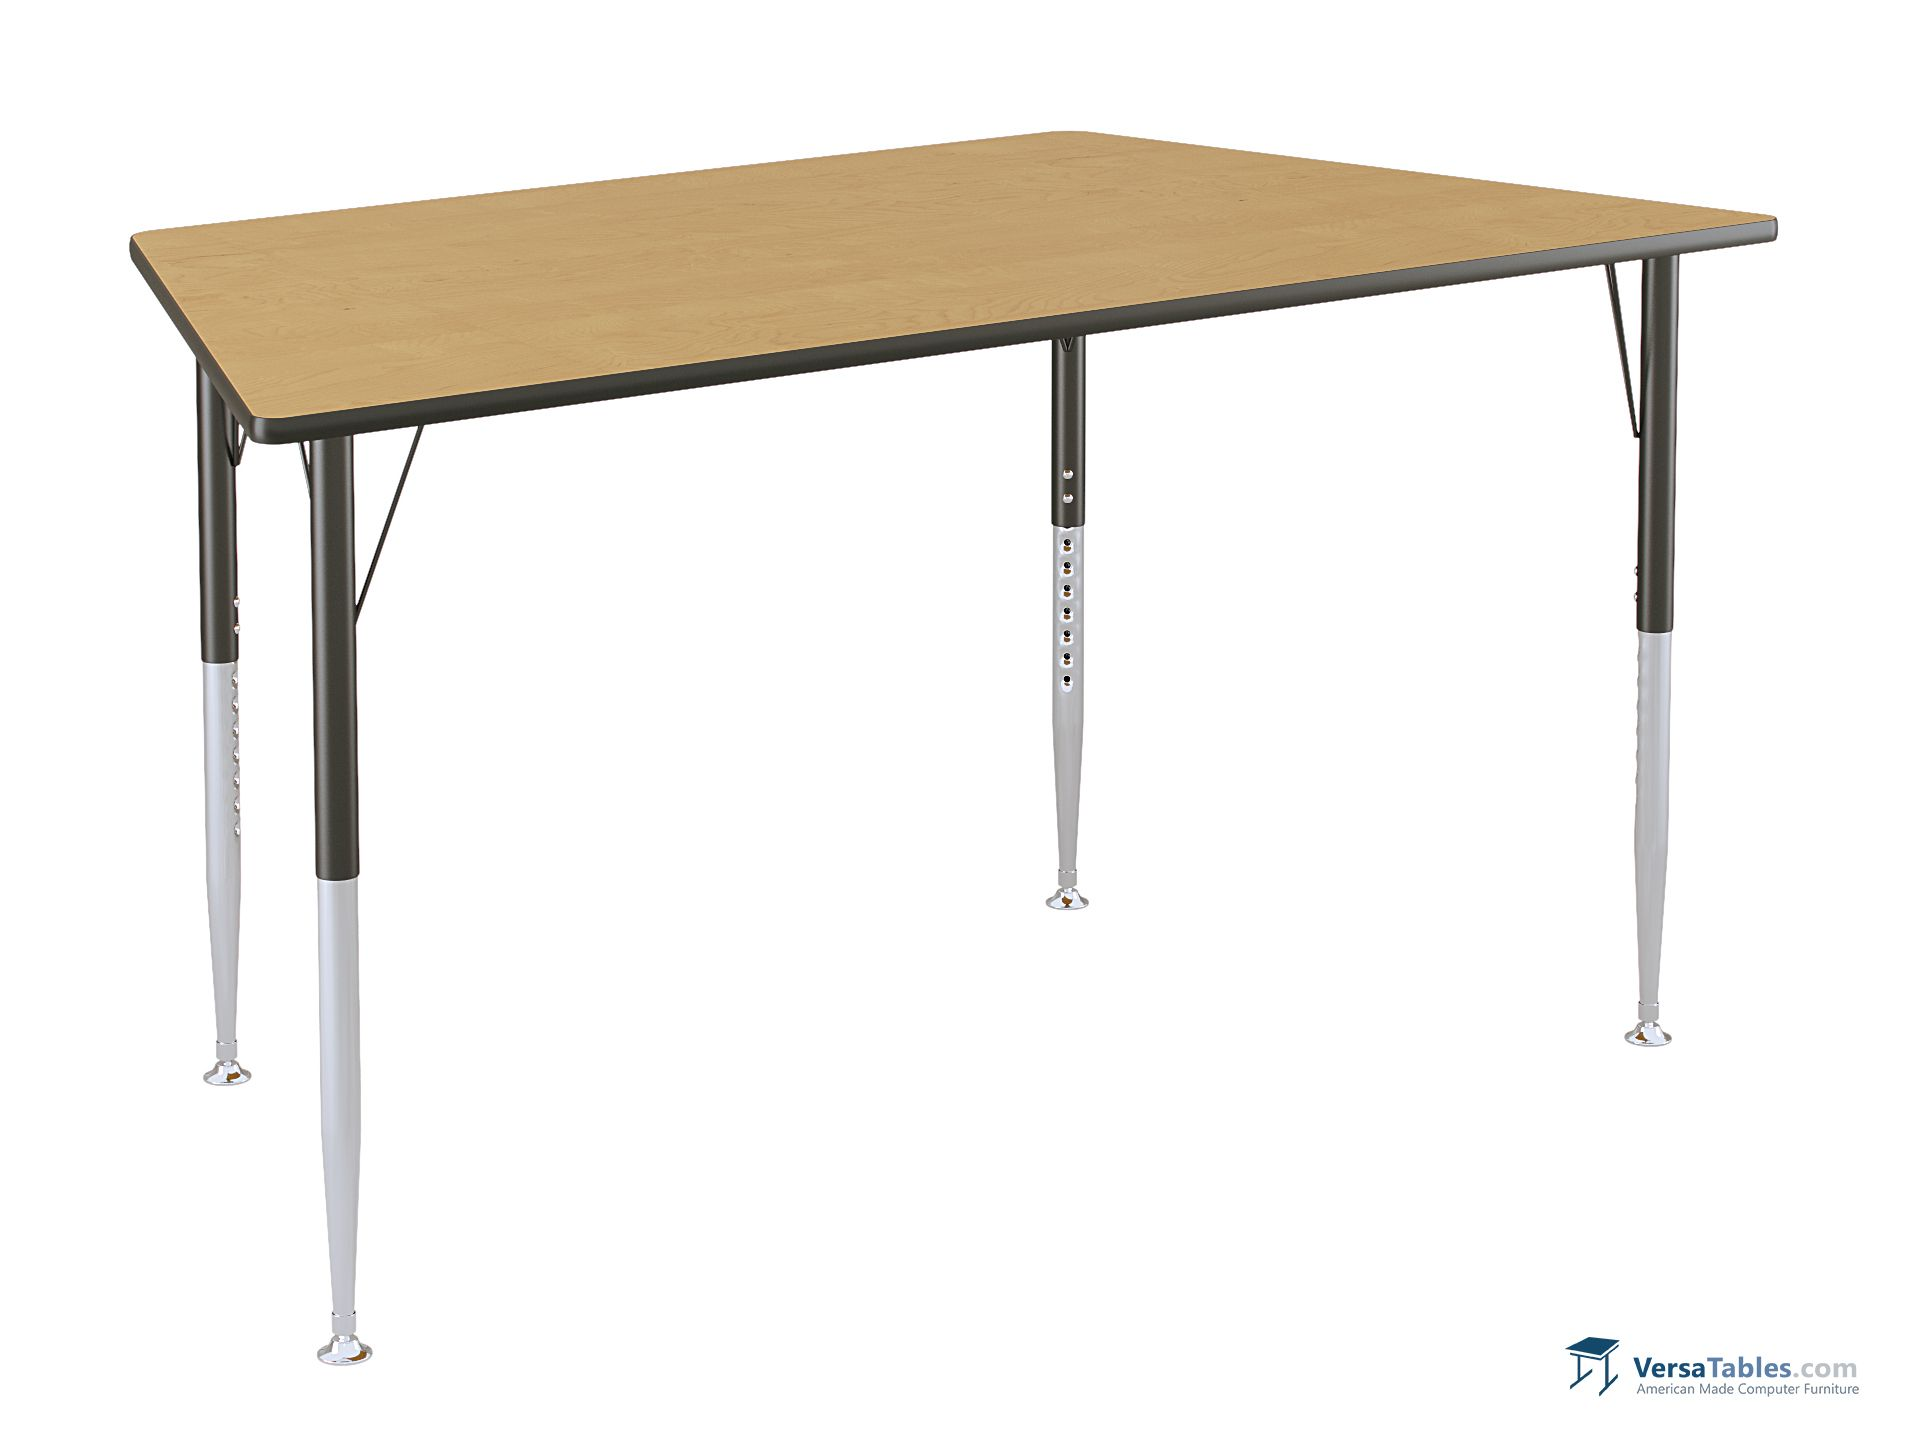 Versa Connect Activity Table - Trapezoid - VCAT-TRAP Series By Versa Tables